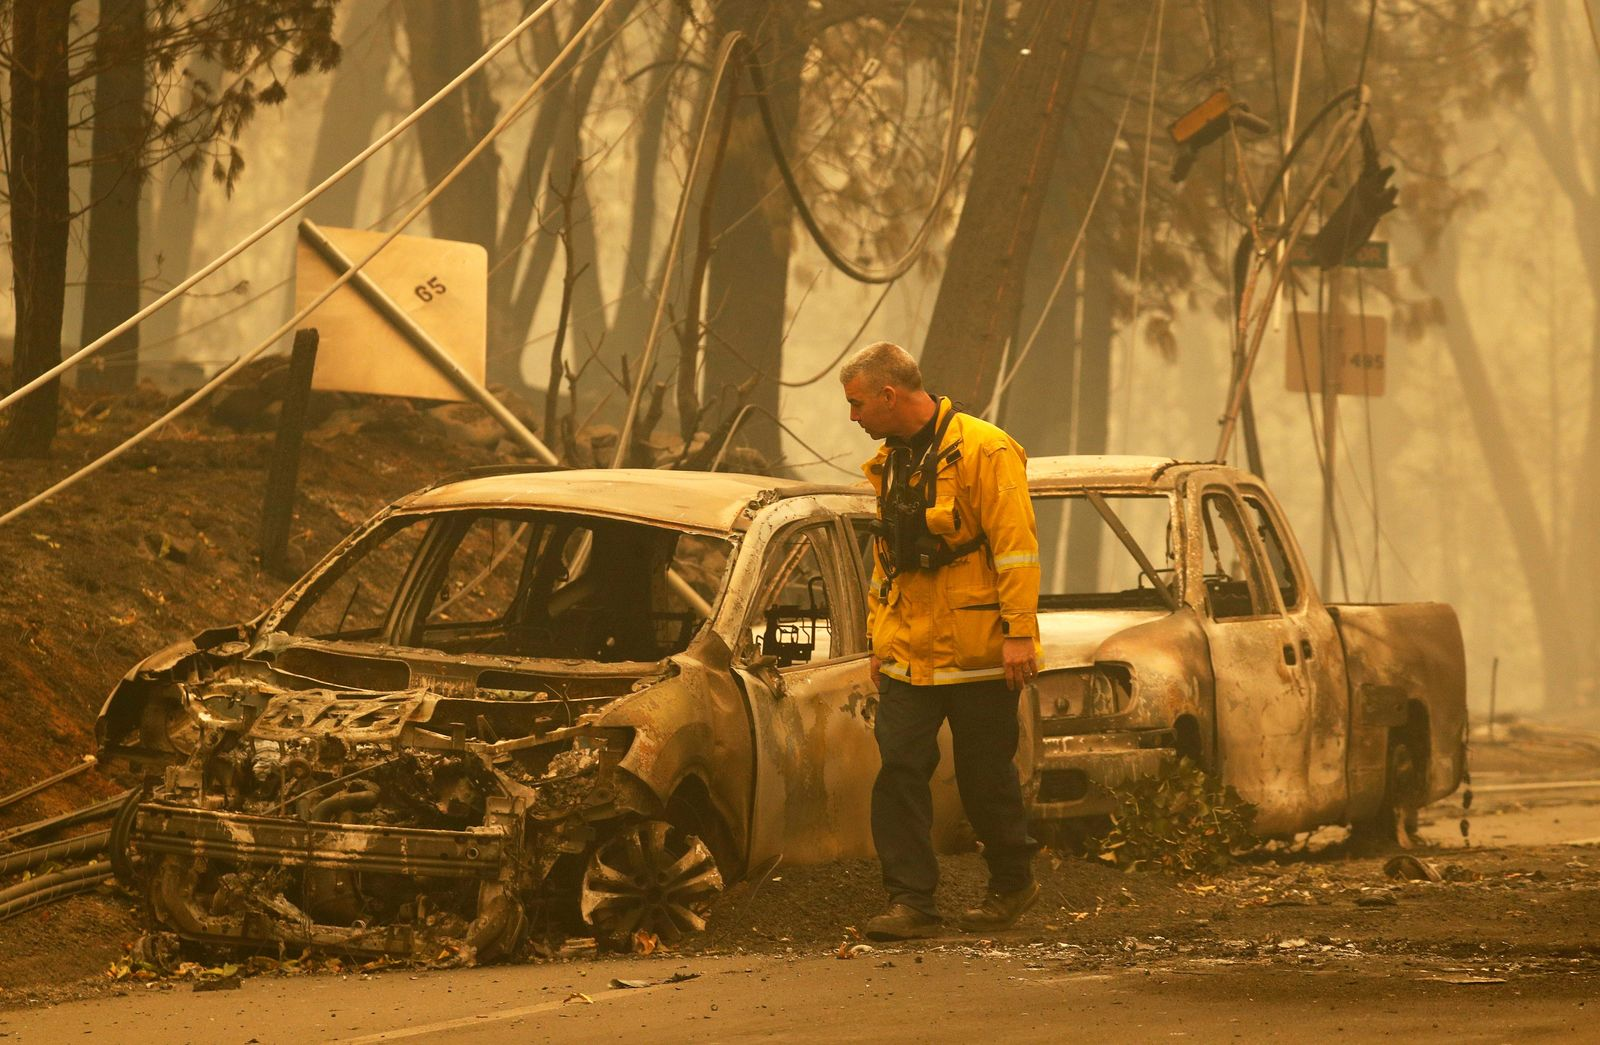 A Sonoma Valley firefighter inspects burned out cars to make sure they are clear of human remains, Friday, Nov. 9, 2018, in Paradise, Calif. (AP Photo/John Locher)